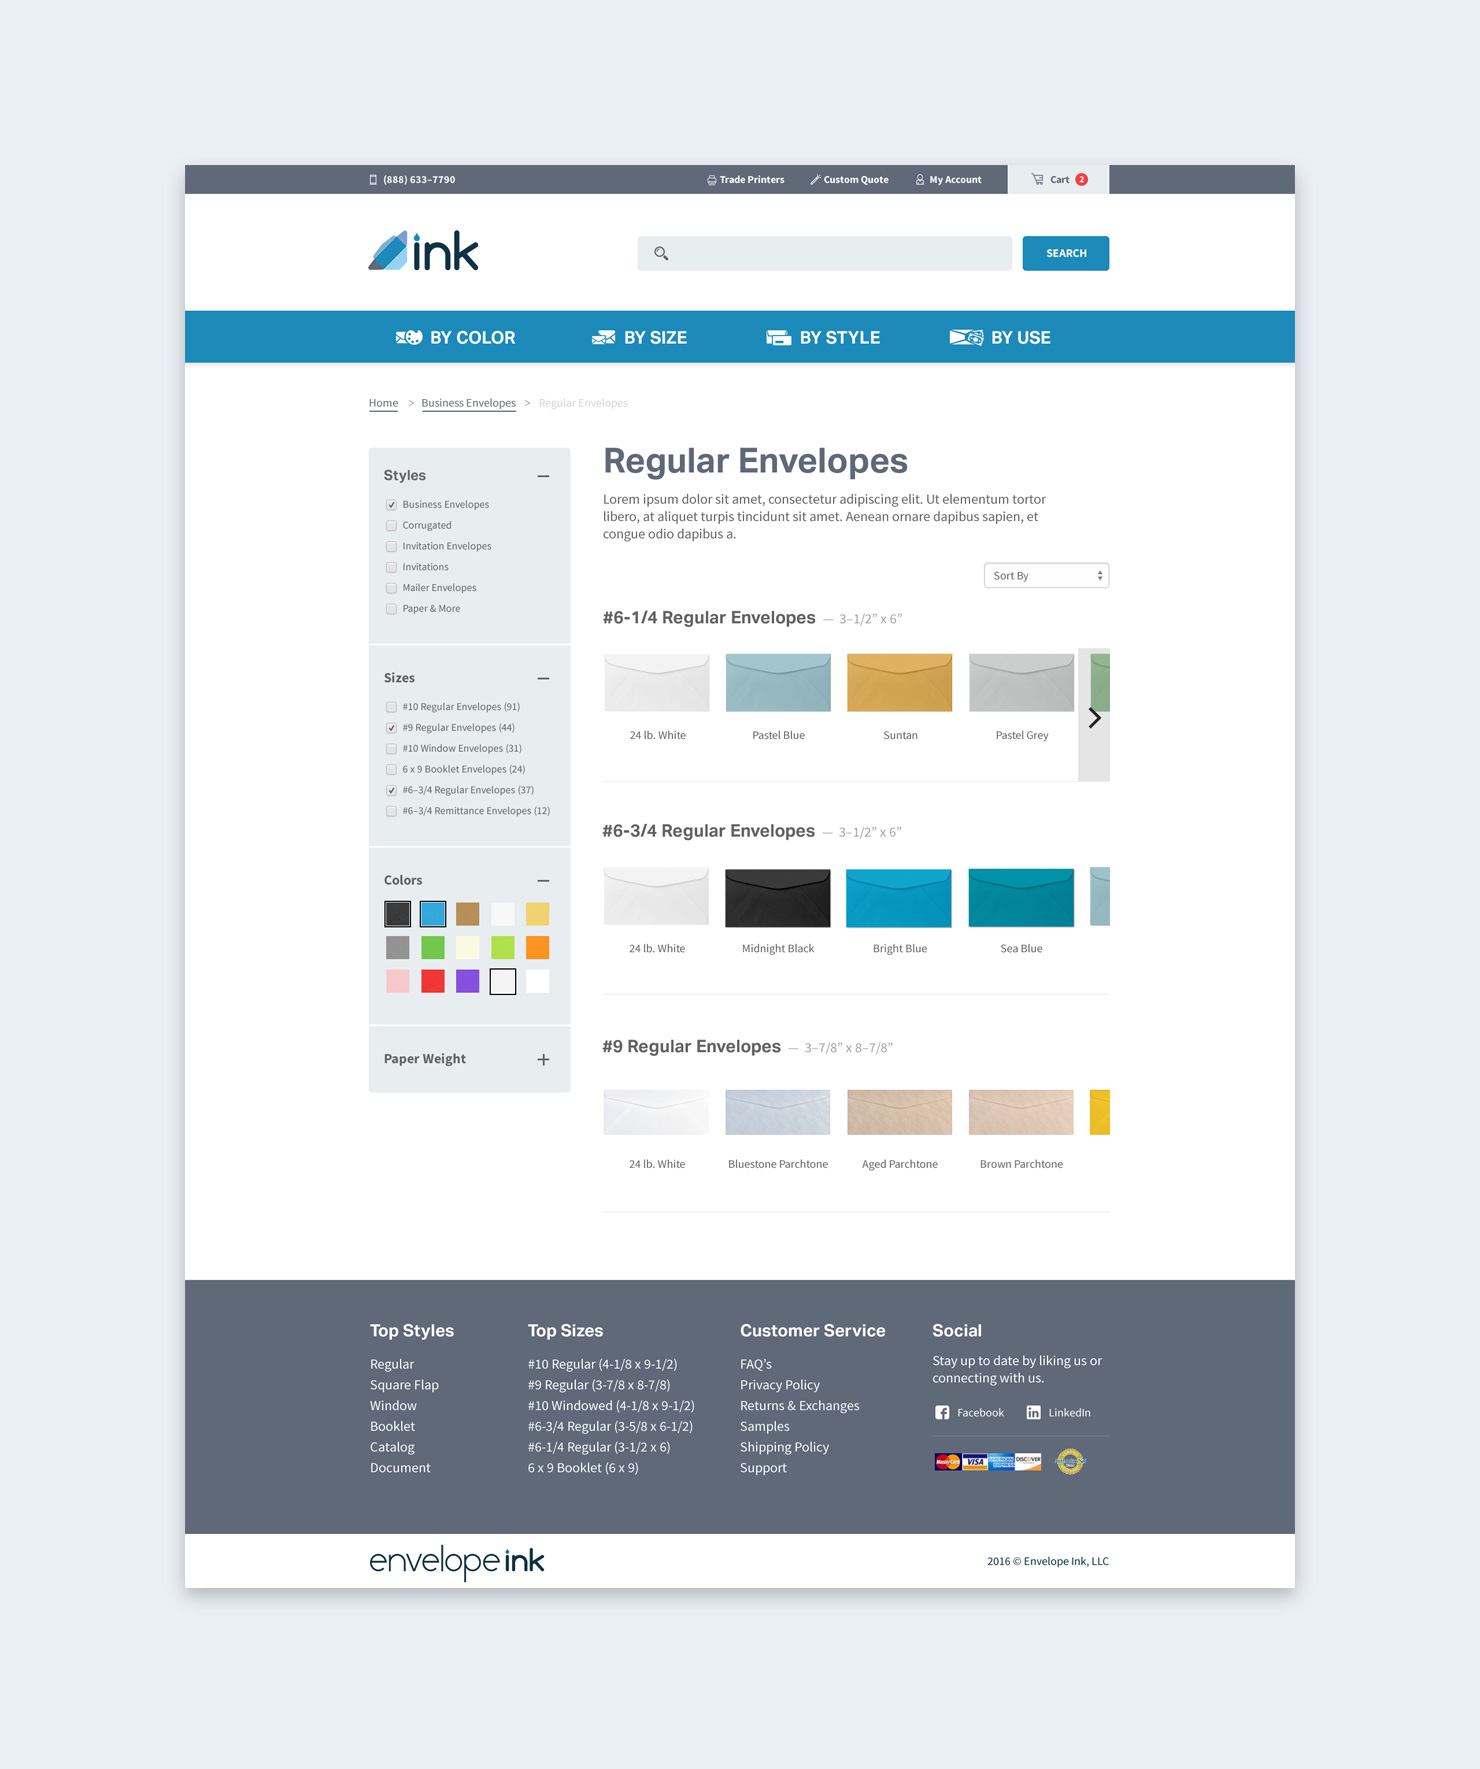 Envelope Ink Product Listing Page Design